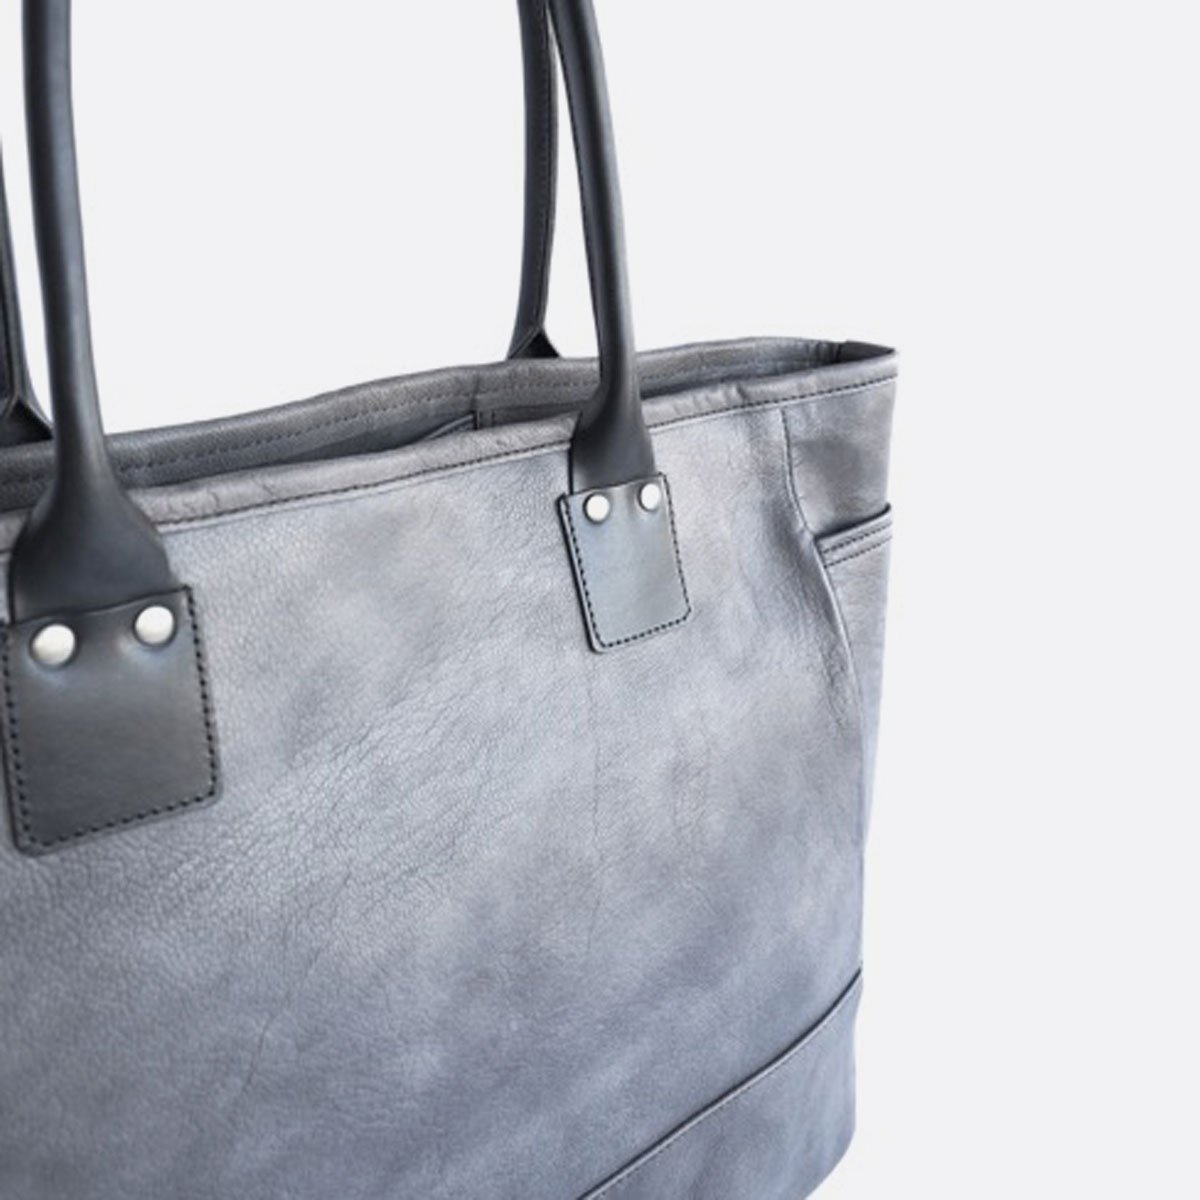 LEATHER&SILVER MOTO BAG19 GOAT LEATHER TOTE BAG (CHARCOAL)2